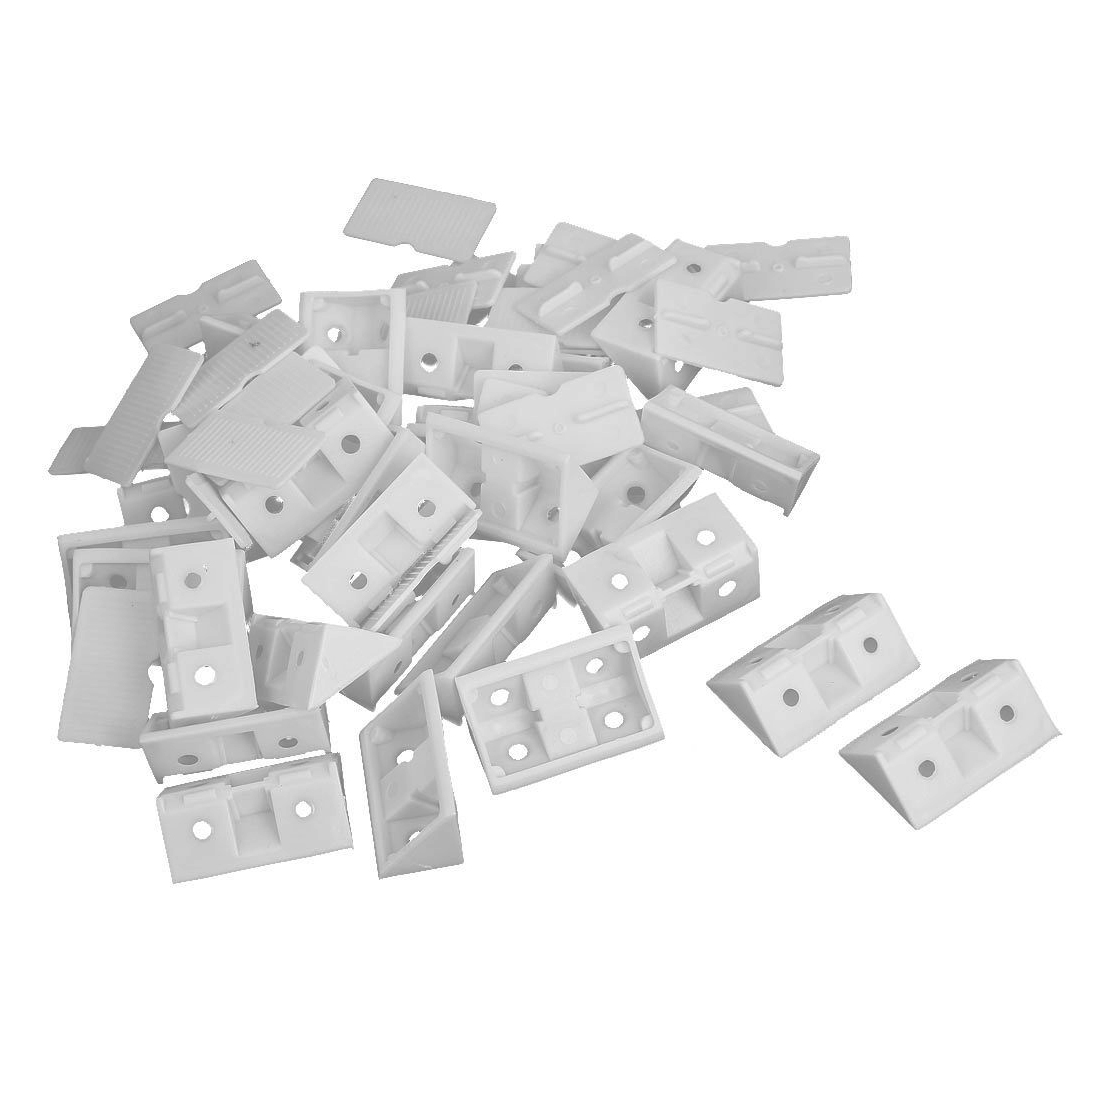 Compare Prices on Shelf Angle Bracket- Online Shopping/Buy Low ...